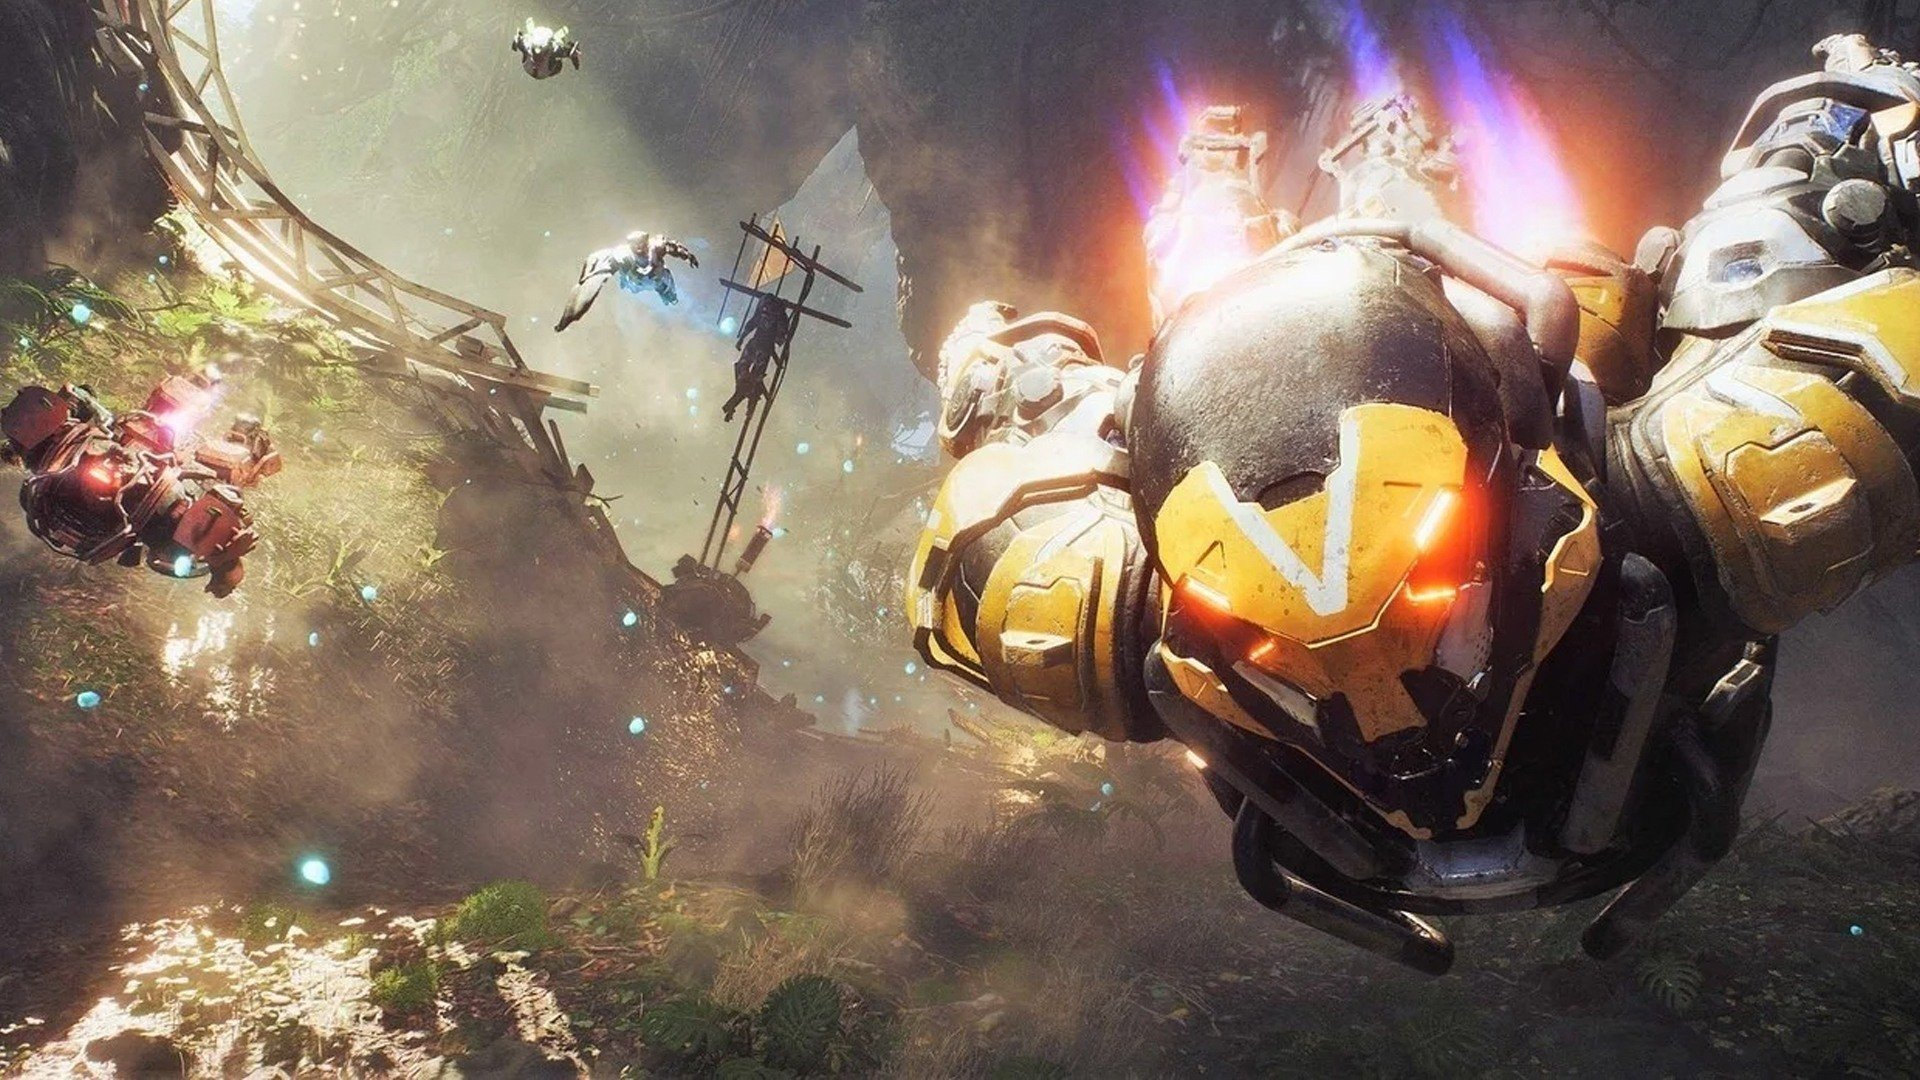 Anthem 1.1.0 update patch notes adds The Sunken Cell